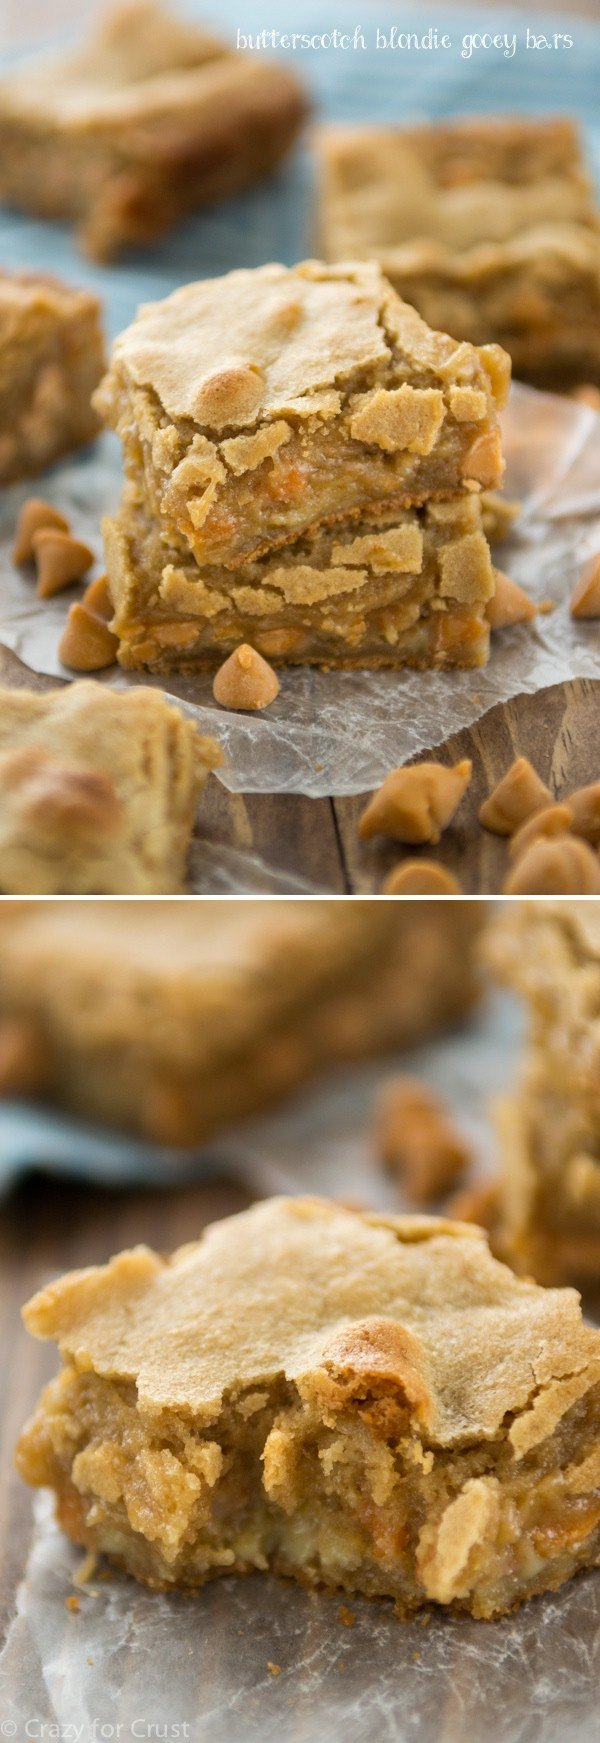 Butterscotch Blondie Gooey Bars - like a blondie but in gooey bar form, with butterscotch chips! collage photo